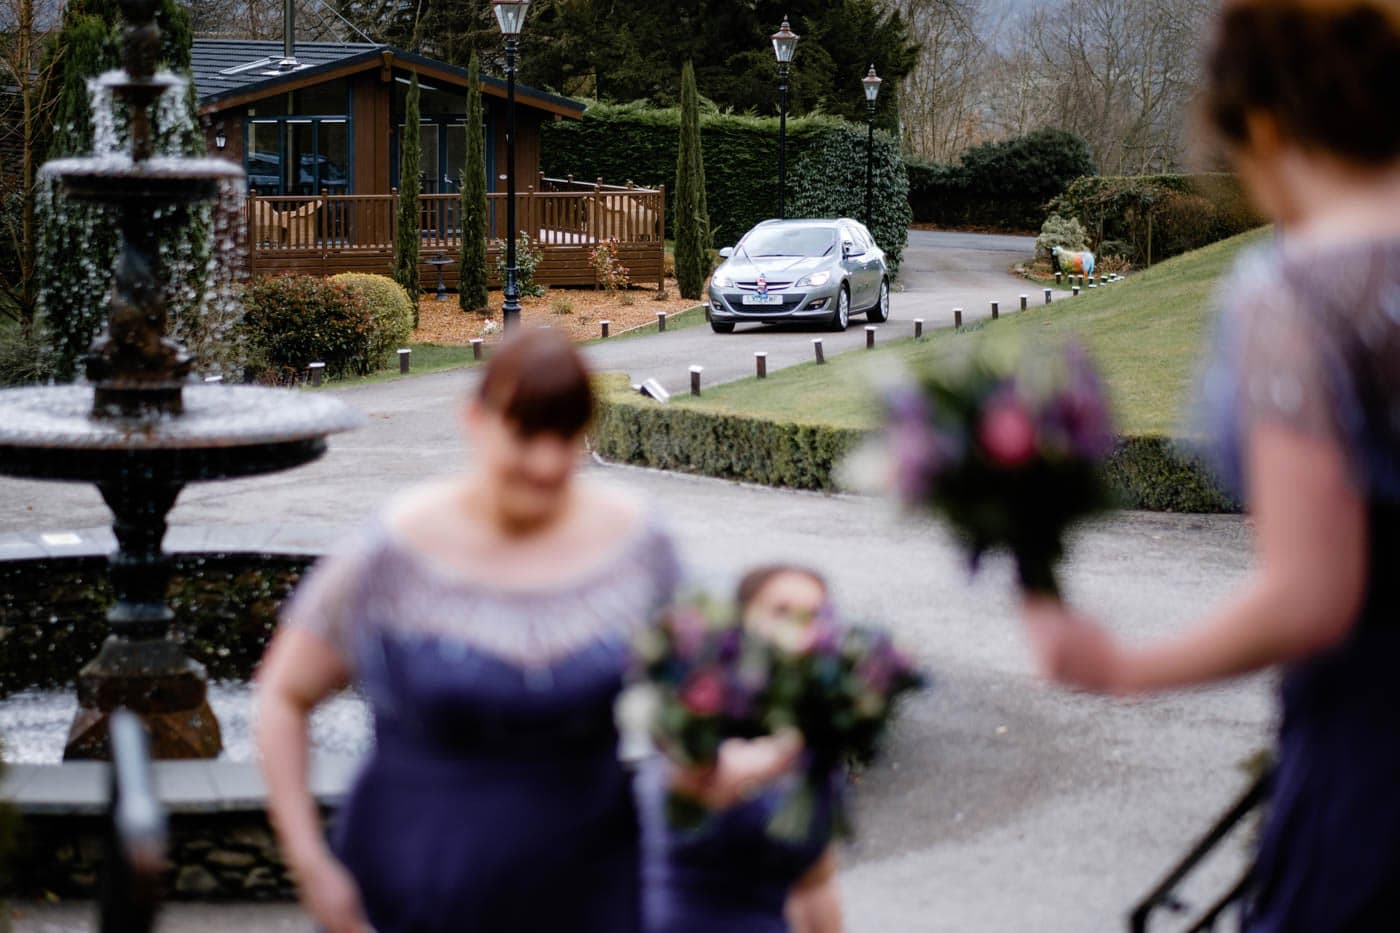 Bride's car arriving for her wedding ceremony at Broadoaks Country House by Lake District wedding photographer Clive Blair Photography